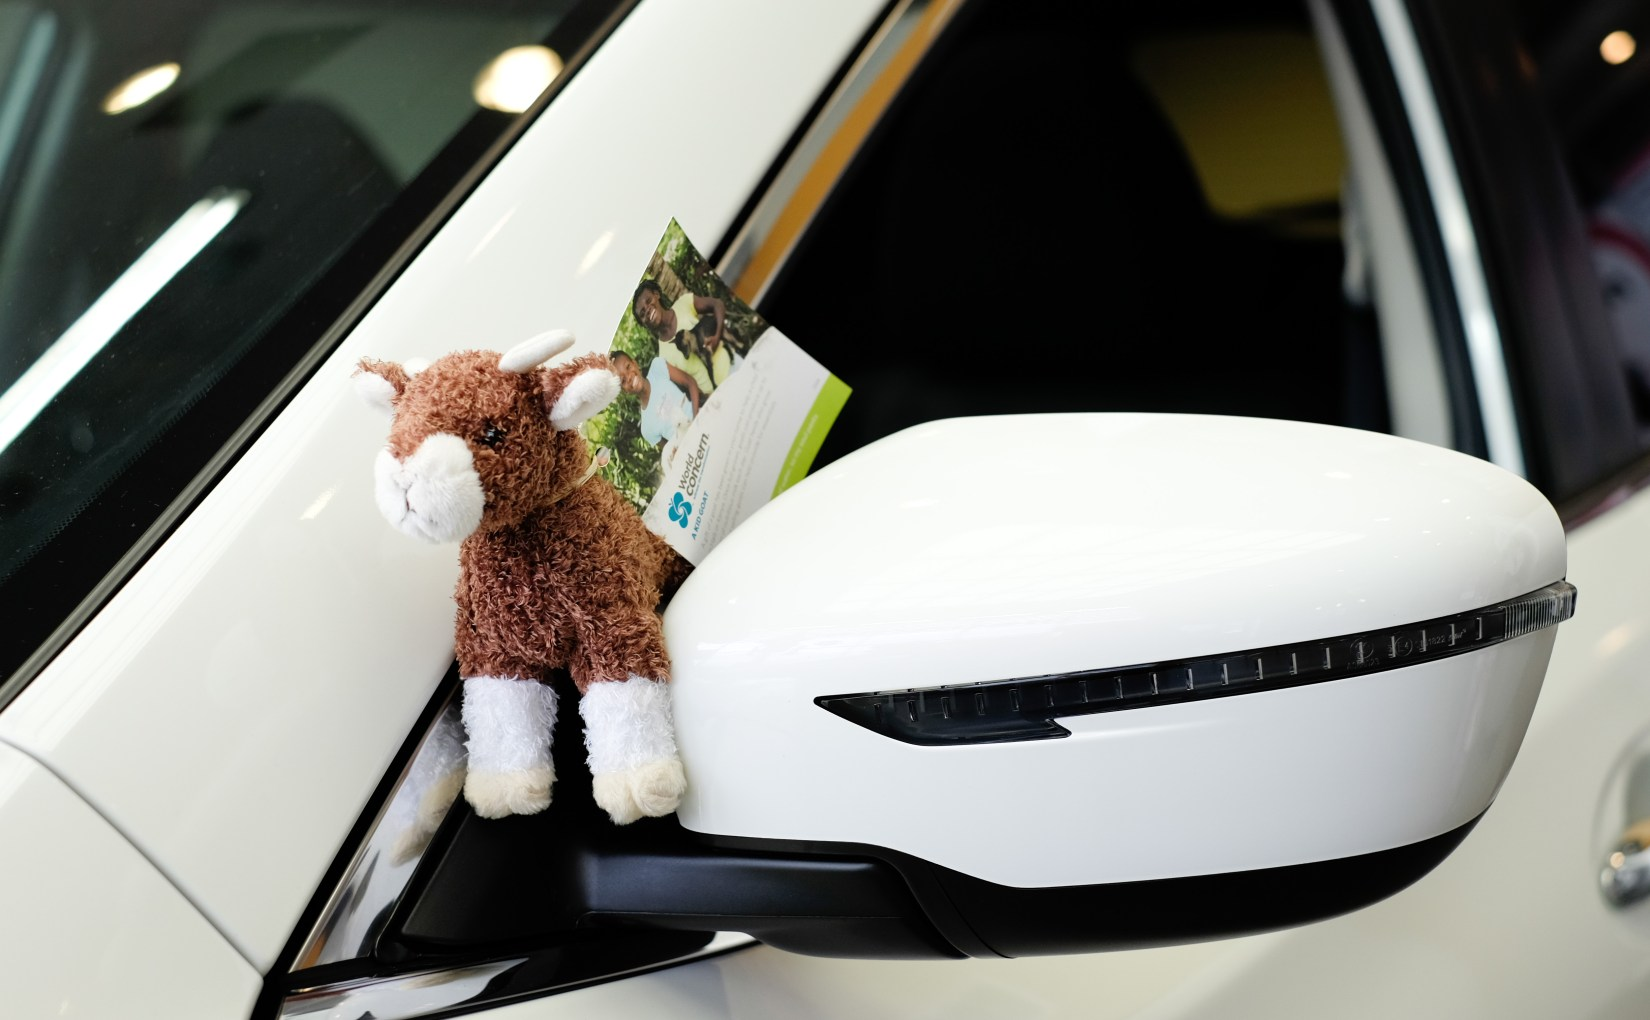 Sometimes it seems customers are more excited about their stuffed goats than their new cars which is saying a lot!